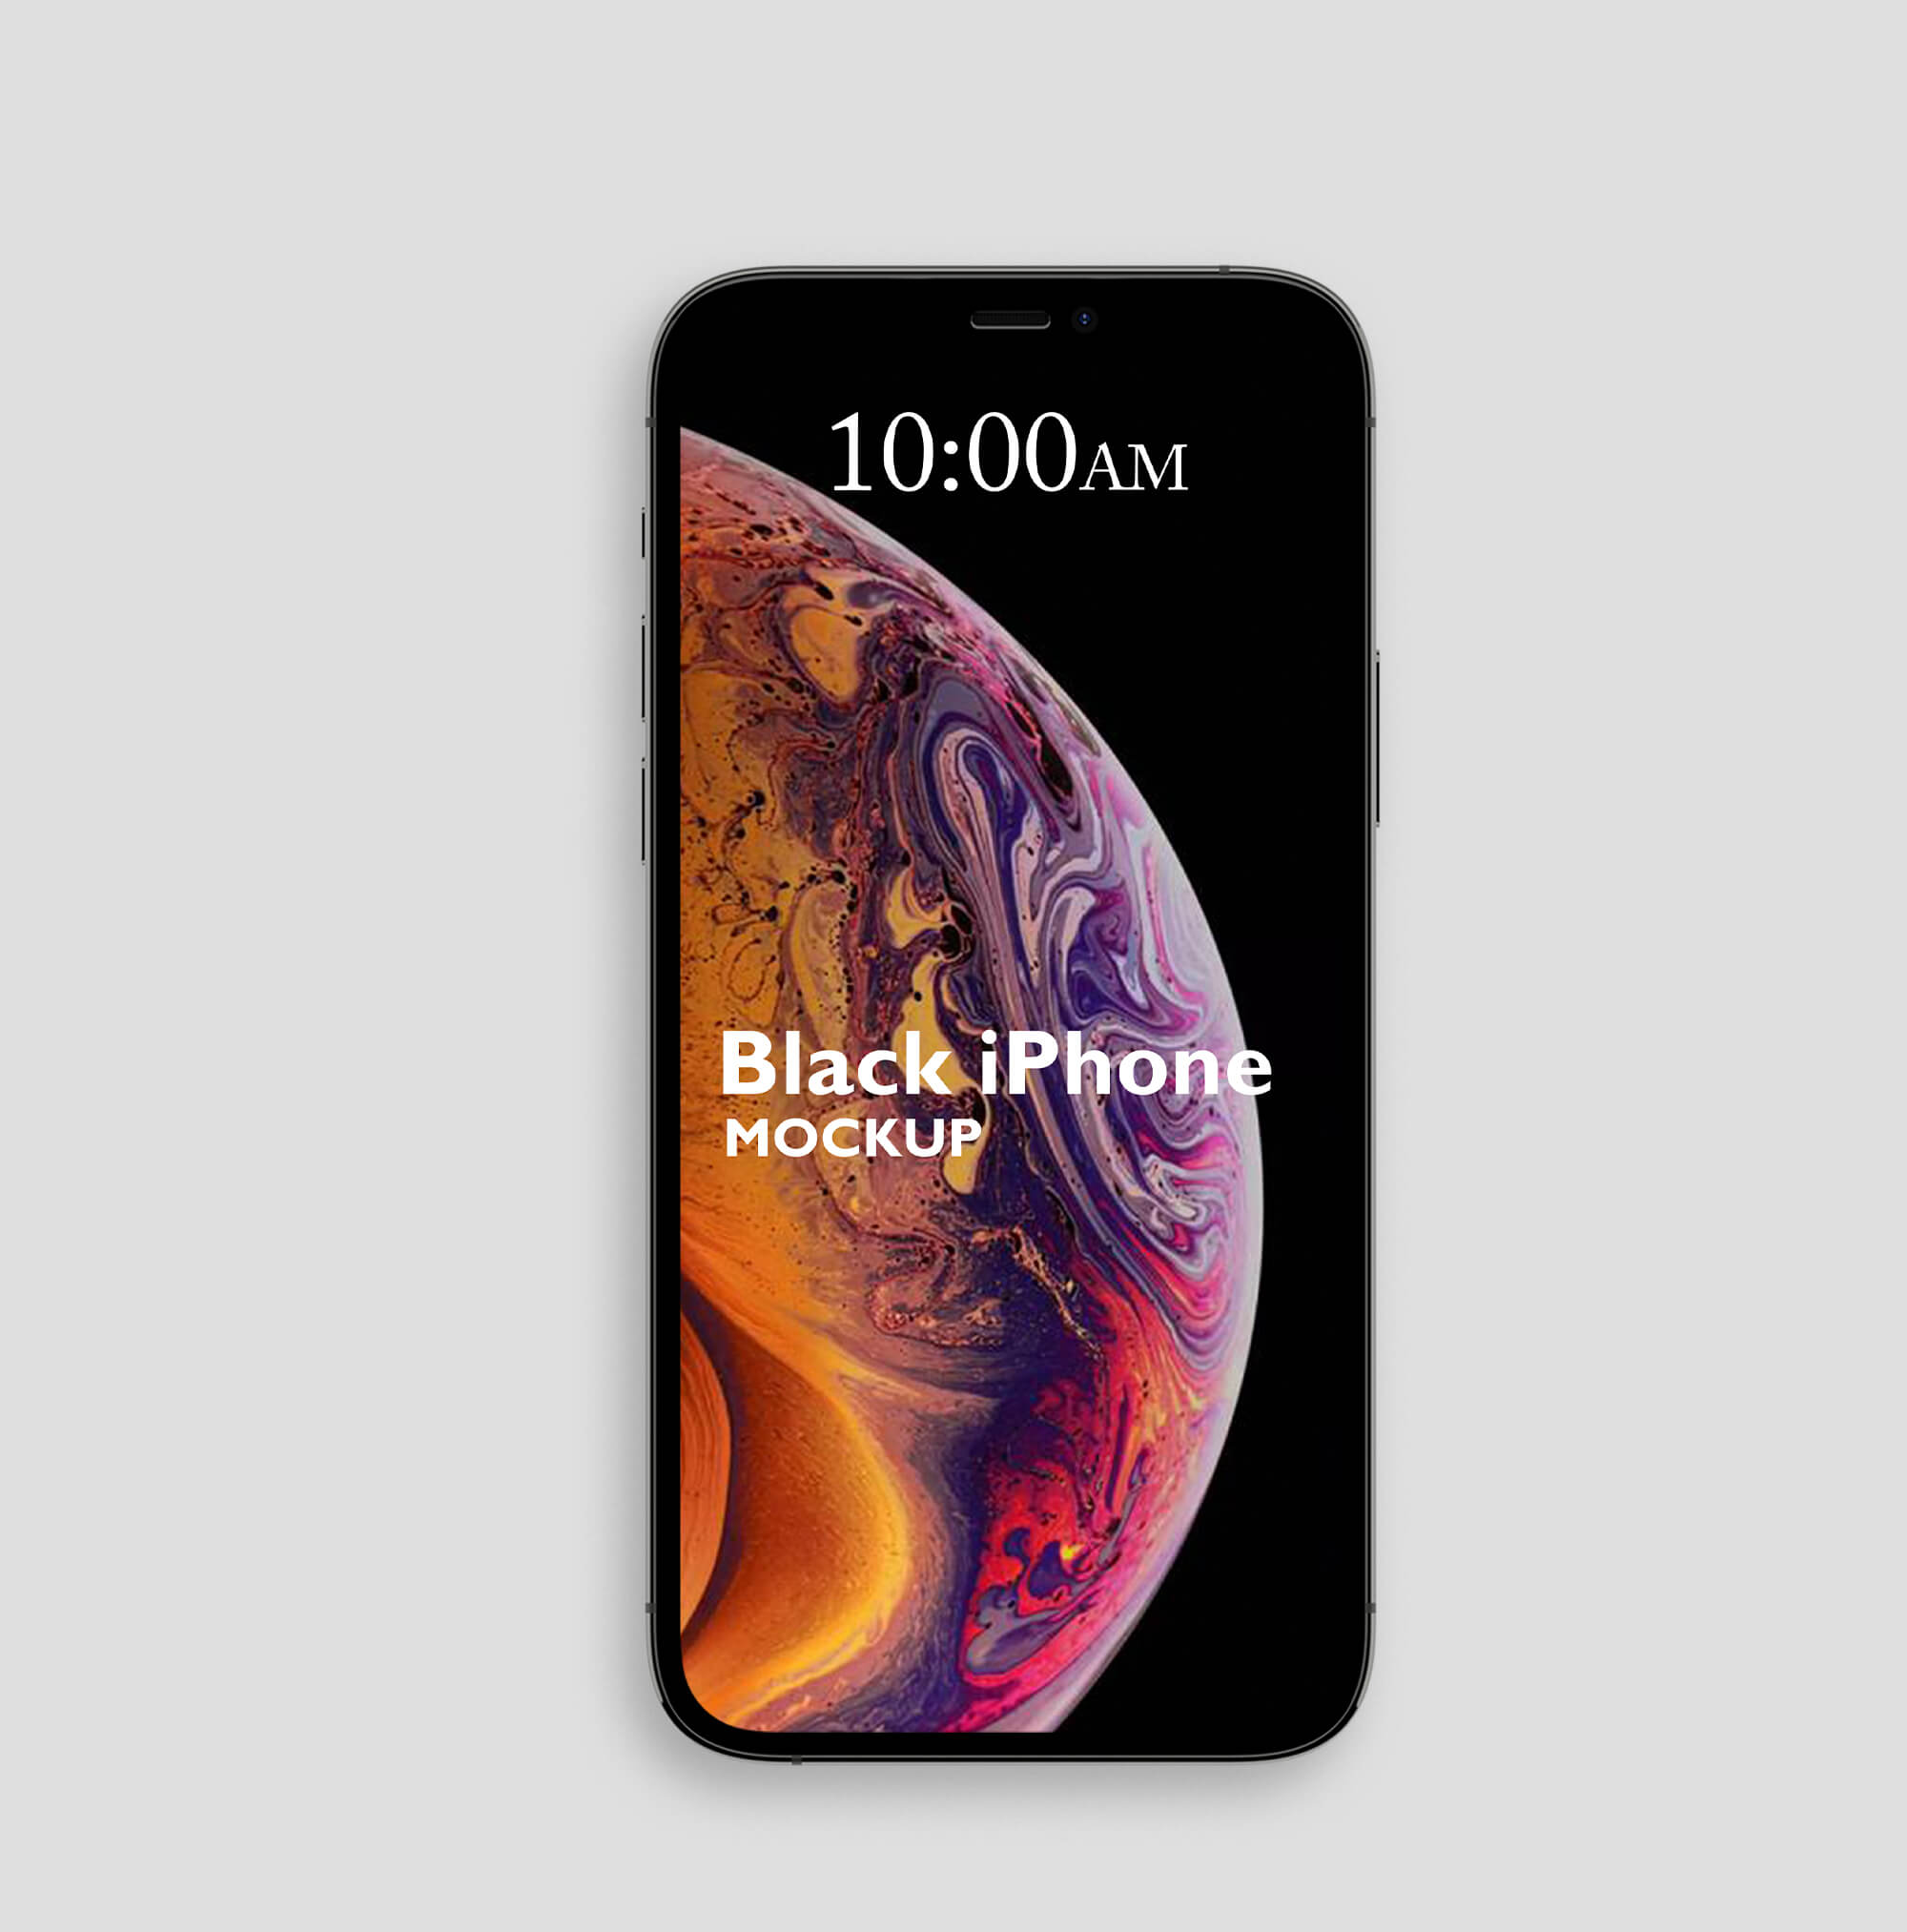 Design Free Black iPhone Mockup PSD Template